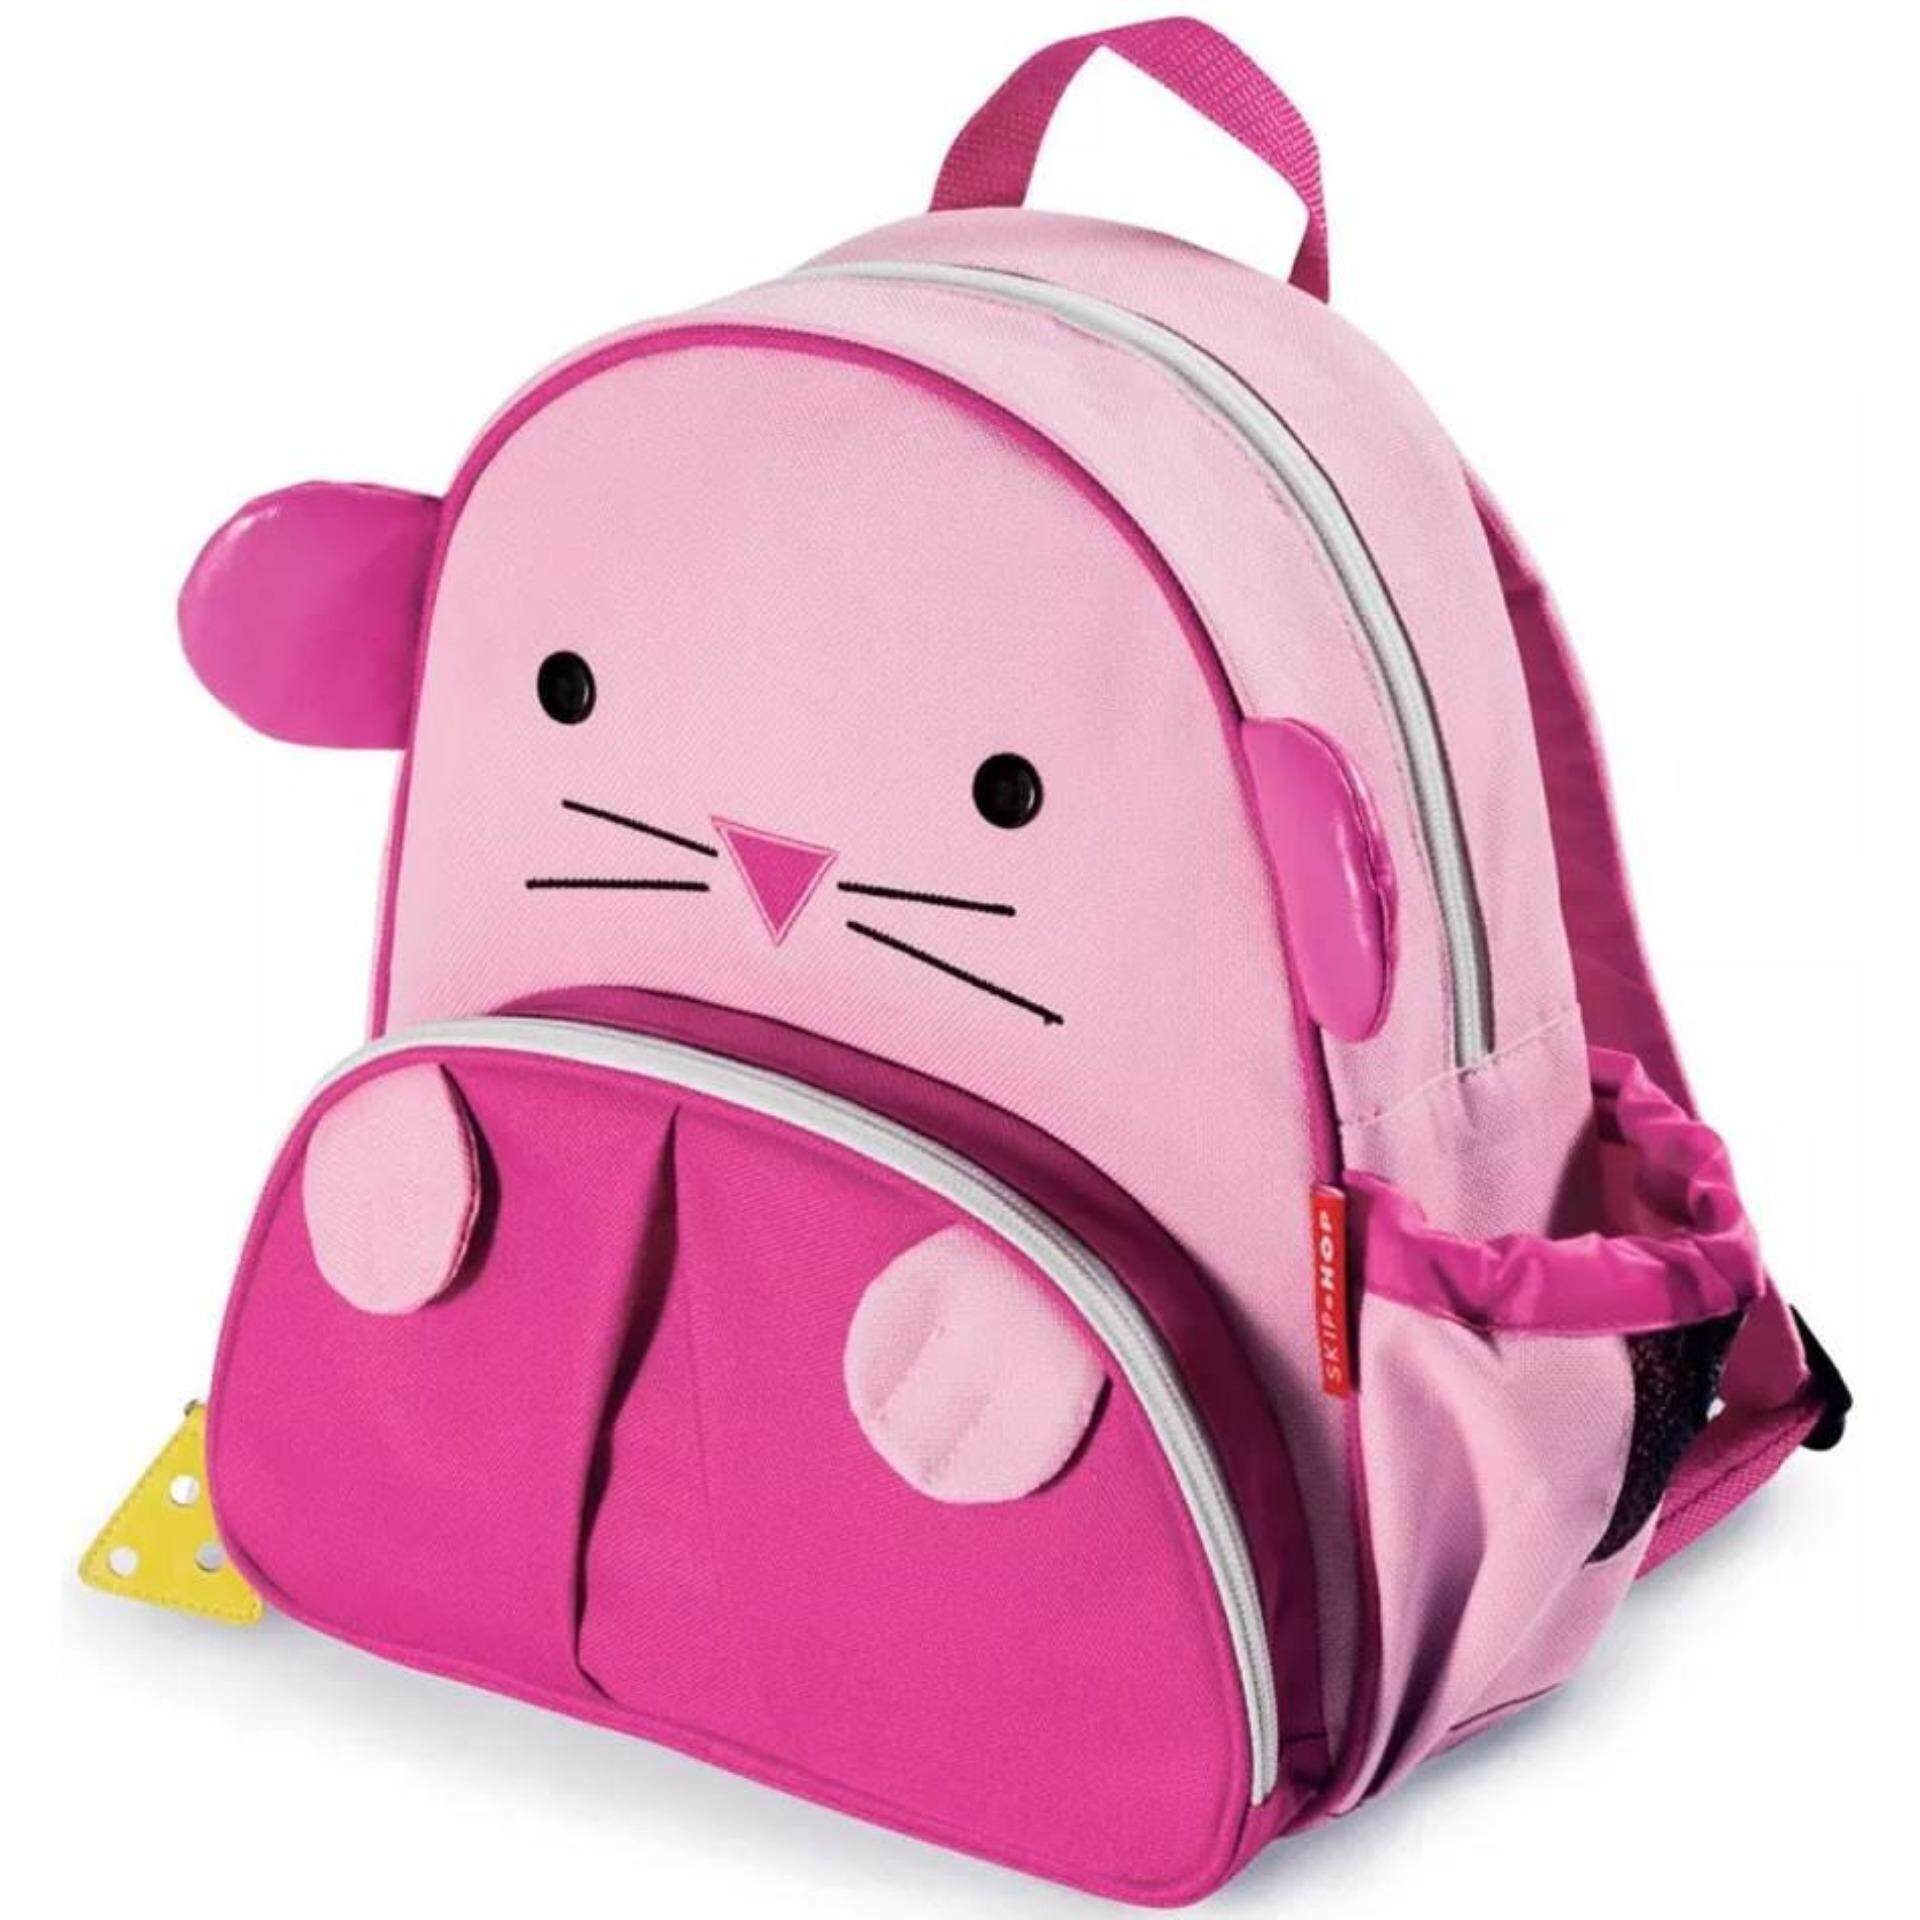 TEEMI Animal Design School Bag / Backpack for Kid - Pink Mice